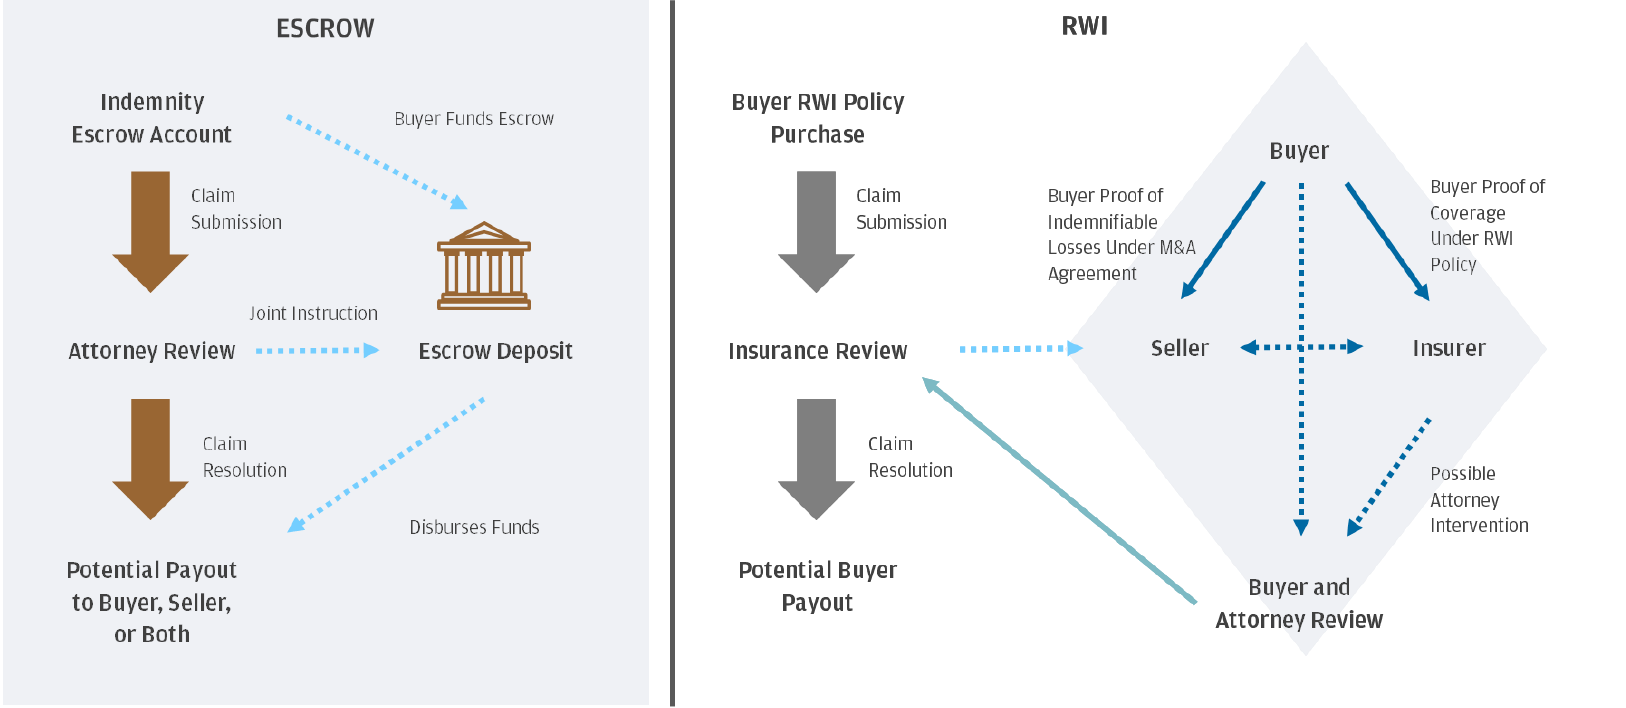 A flowchart comparing escrow and RWI claim events. On the escrow side, an indemnity escrow account claim submission leads to attorney review and claim resolution leads to potential payout to Buyer, Seller, or both. On the RWI side, claim submission following Buyer RWI policy purchase leads to insurance review, and claim resolution leads to potential buyer payout. On the escrow side, the steps interact with an escrow deposit; on the RWI side, the steps interact with the Buyer, Seller, Insurer, and Buyer and Attorney Review.